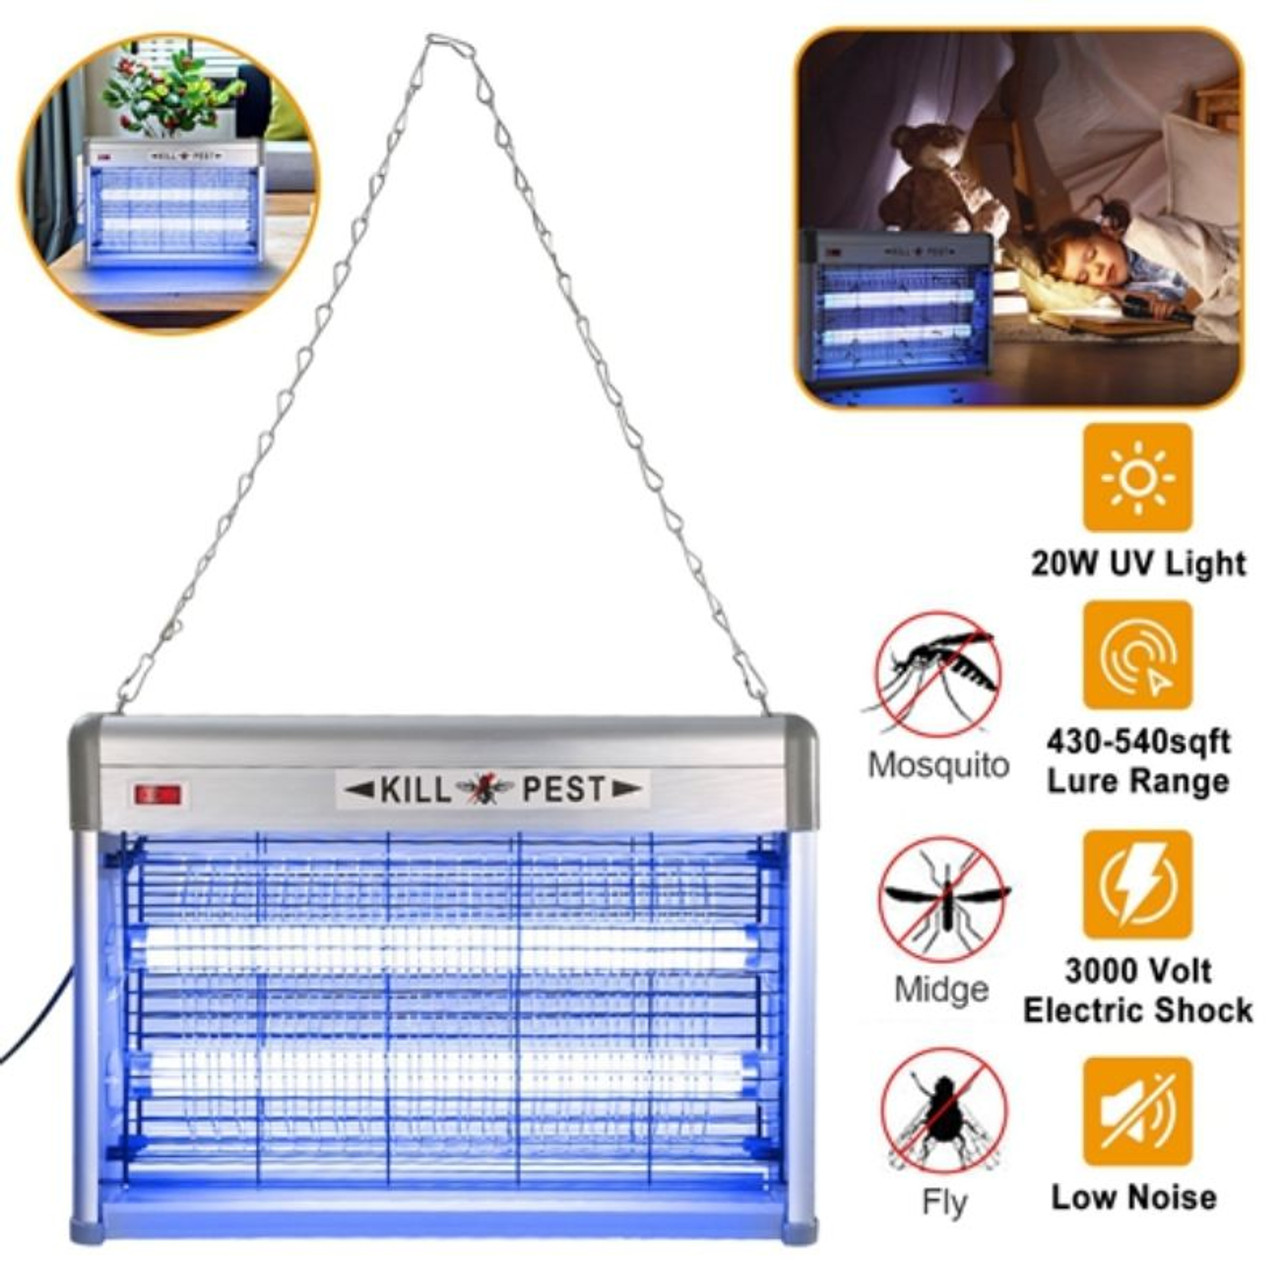 Electric Bug Zapper, Mosquito/Fly/Insect Killer, UV Light, 20W